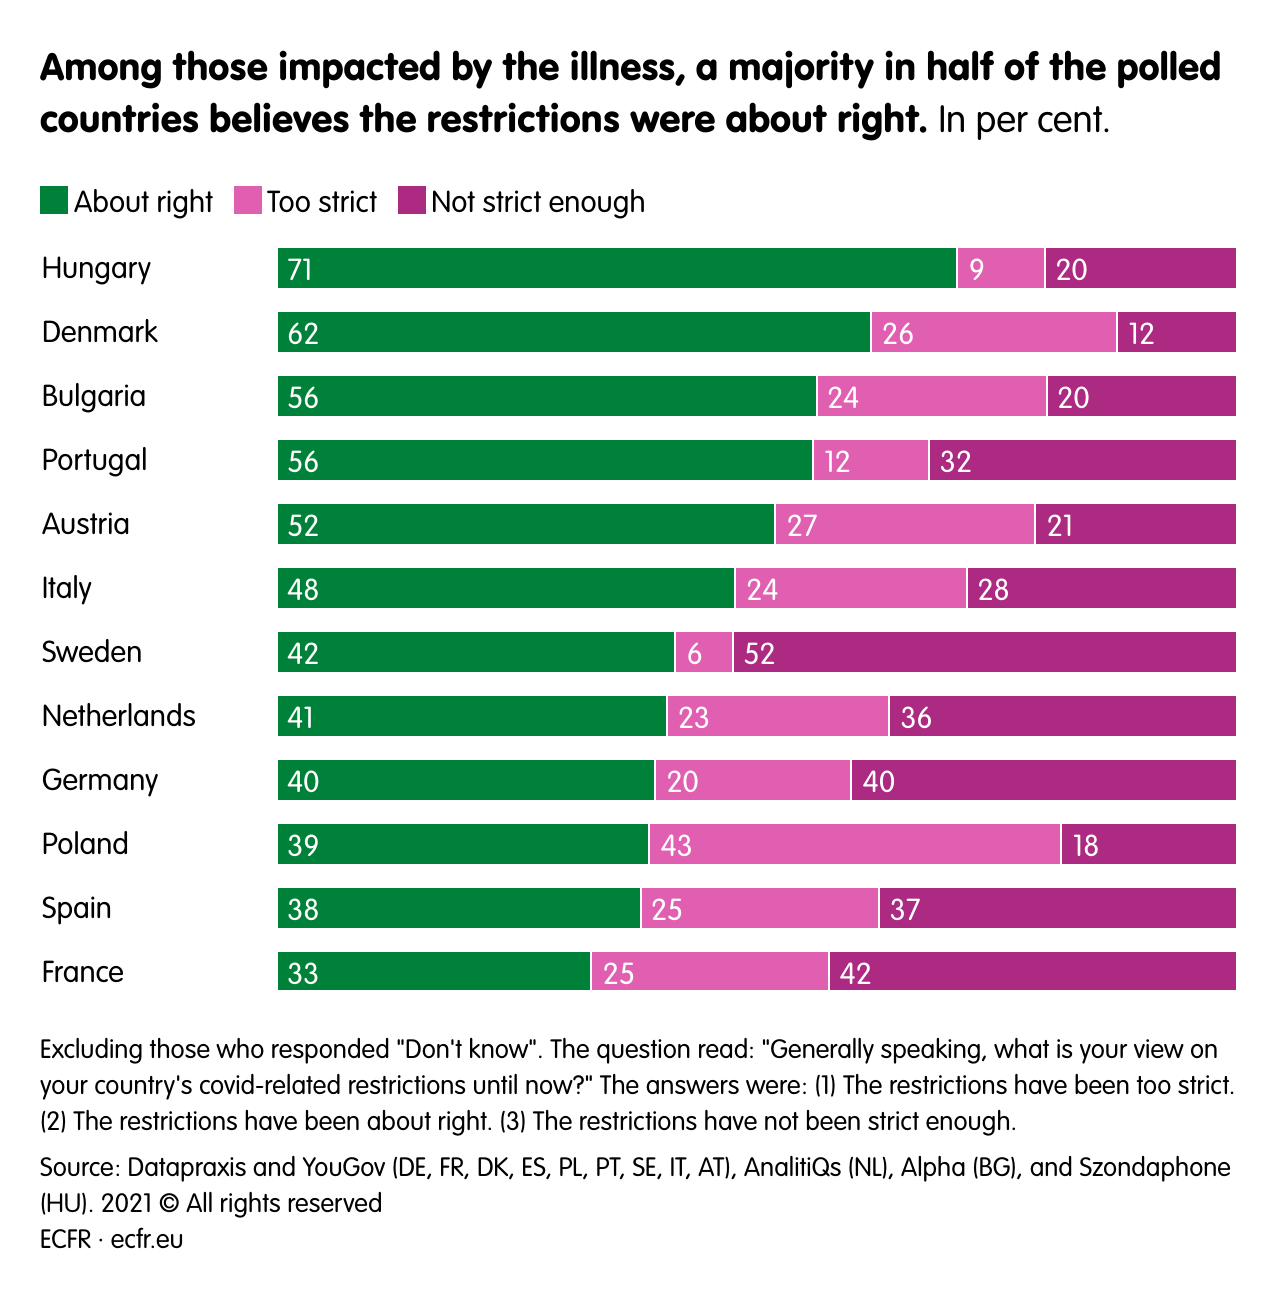 Among those impacted by the illness, a majority in half of the polled countries believes the restrictions were about right.